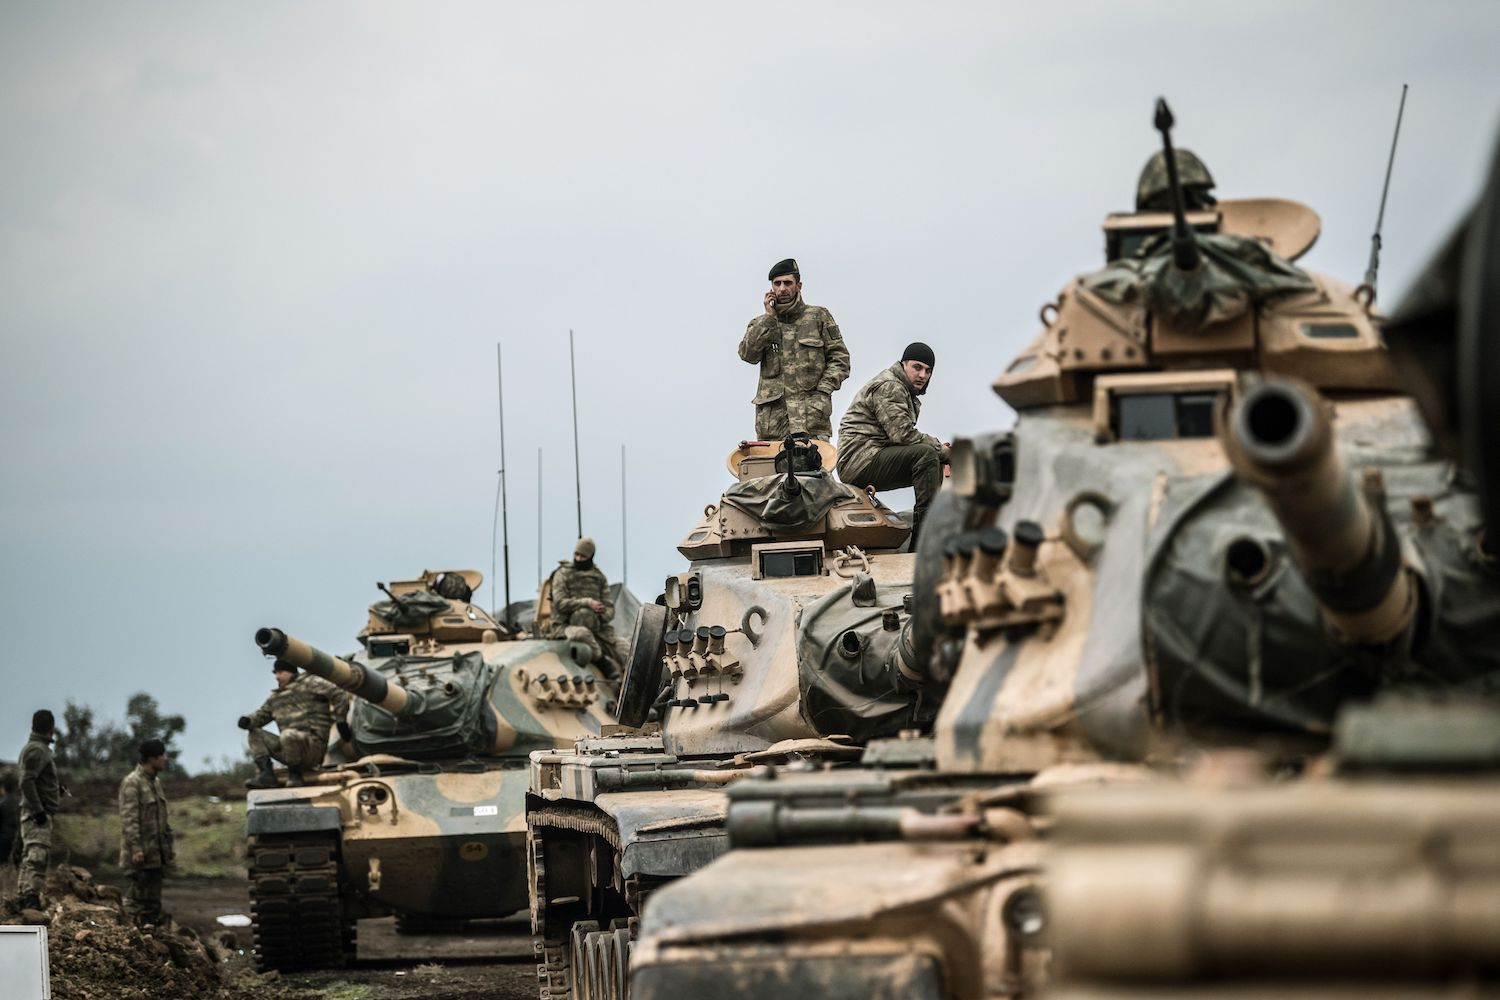 Turkey Is Planning To Increase Defense And Aerospace Exports By $10.2B